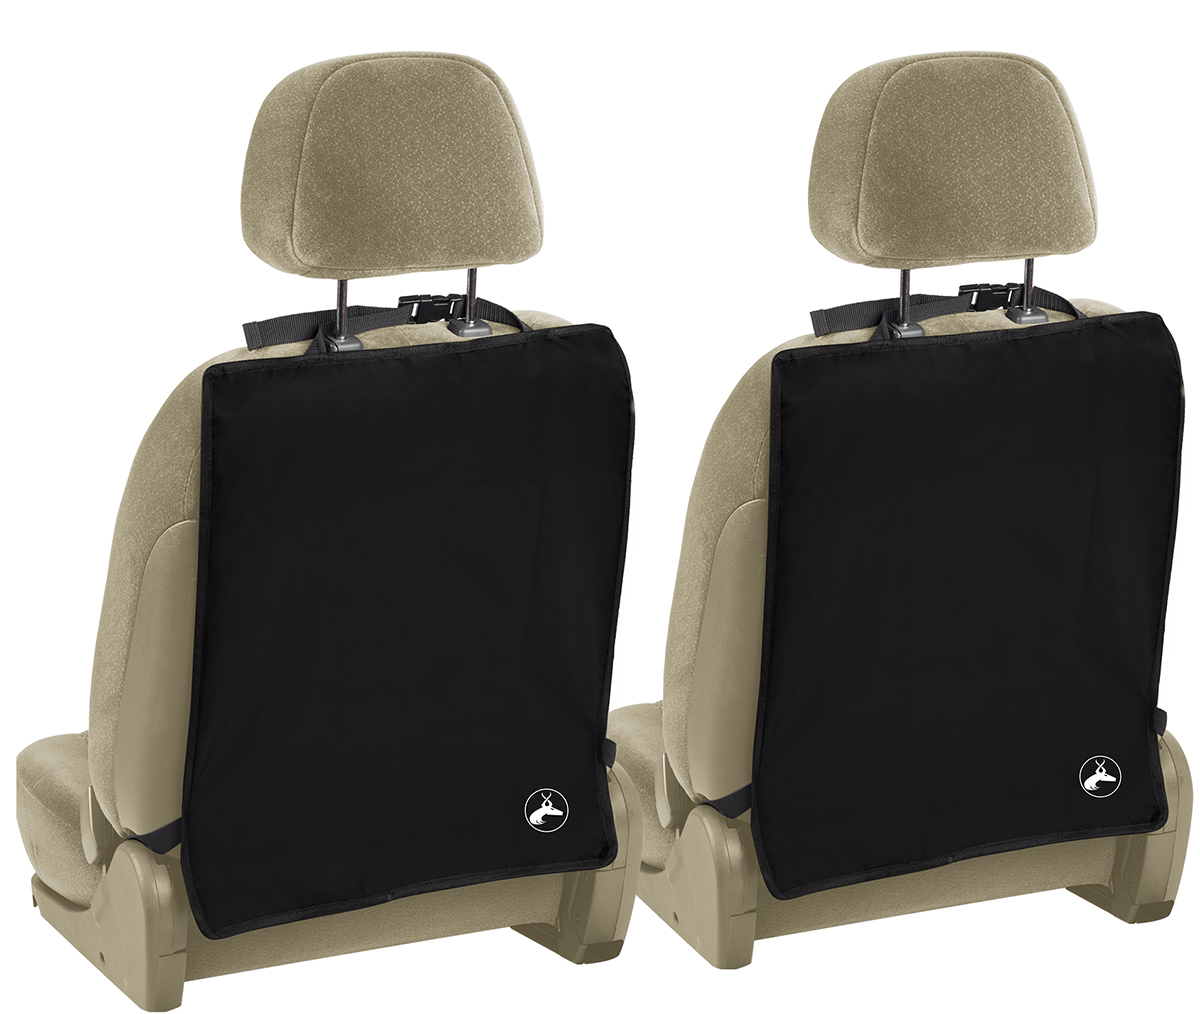 oxgord child car seat back protector kick mat 2 pack walmart com